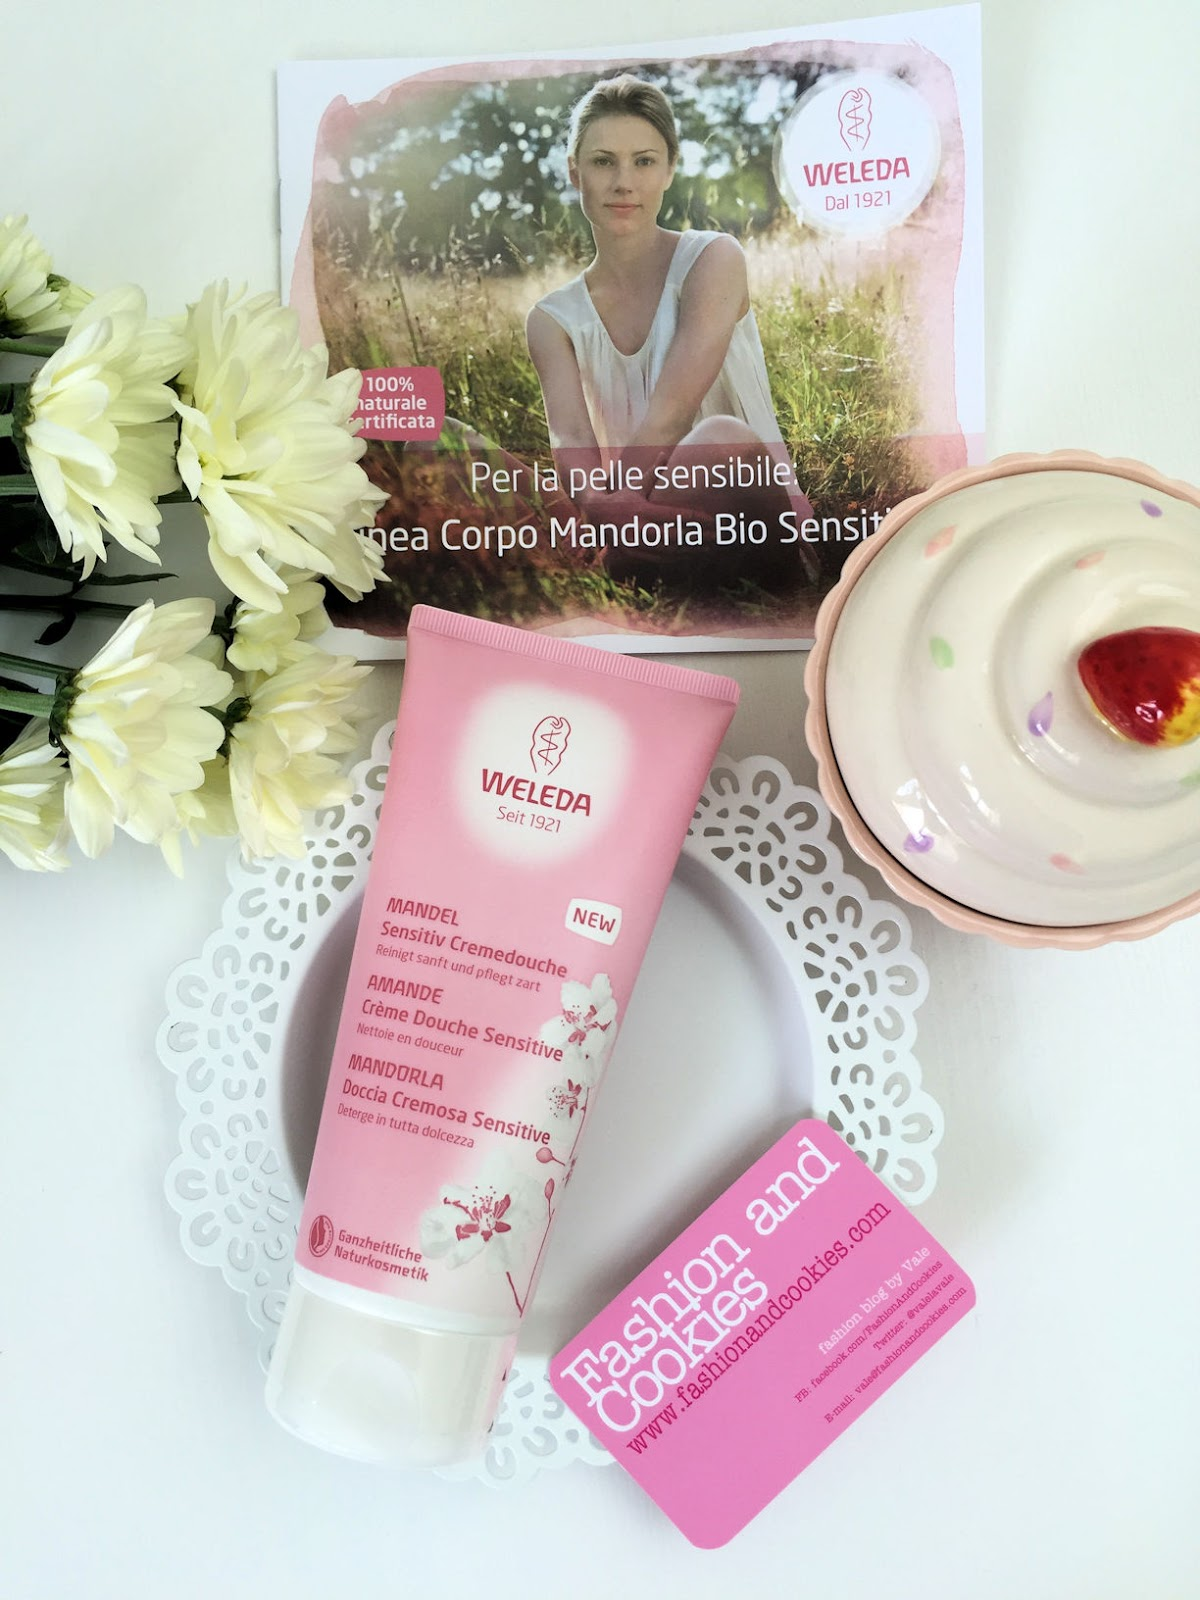 Weleda Creme Douche Sensitive with Almond Oil on Fashion and Cookies beauty blog, beauty blogger